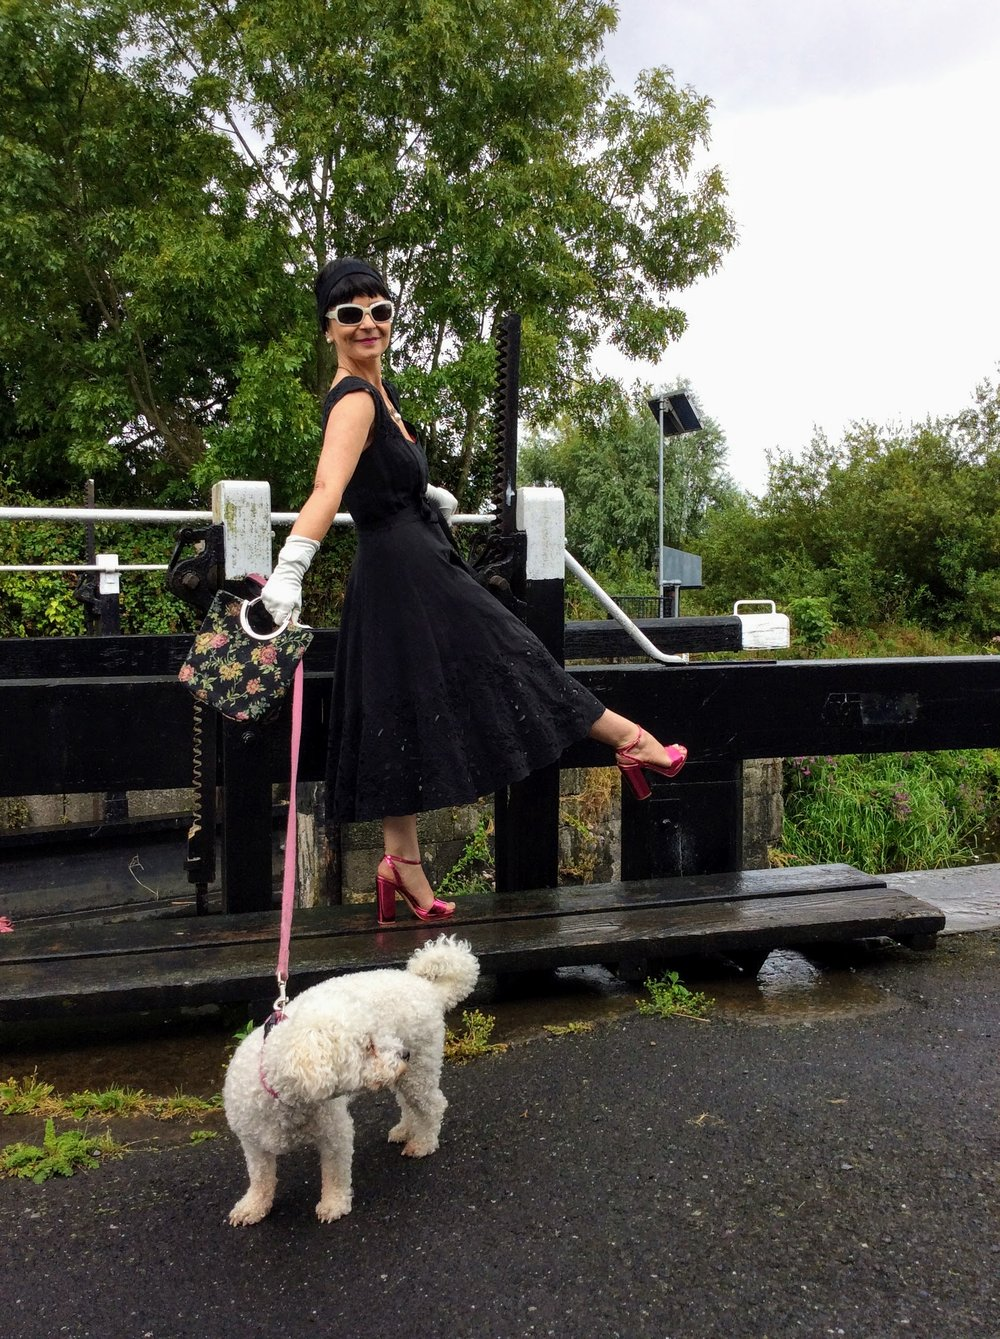 Me and my pooch... Sandals €10 in summer sale 2017. Little floral bag i picked up in a charity  shop.